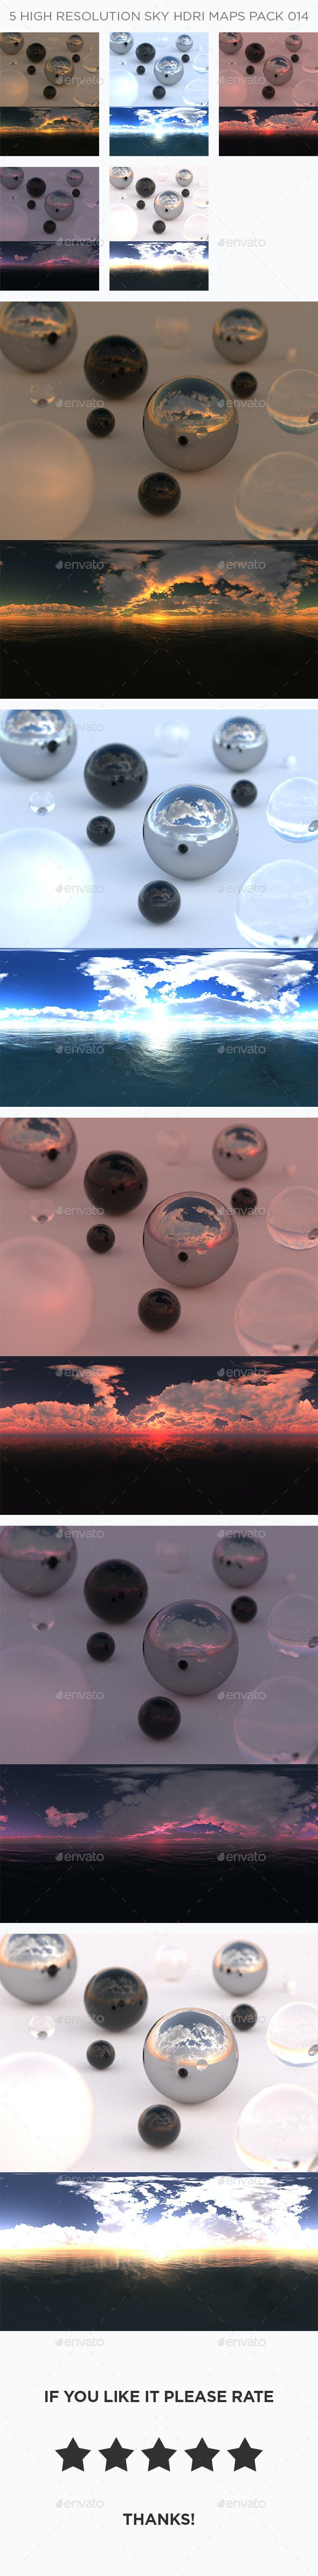 5 High Resolution Sky HDRi Maps Pack 014 - 3DOcean Item for Sale